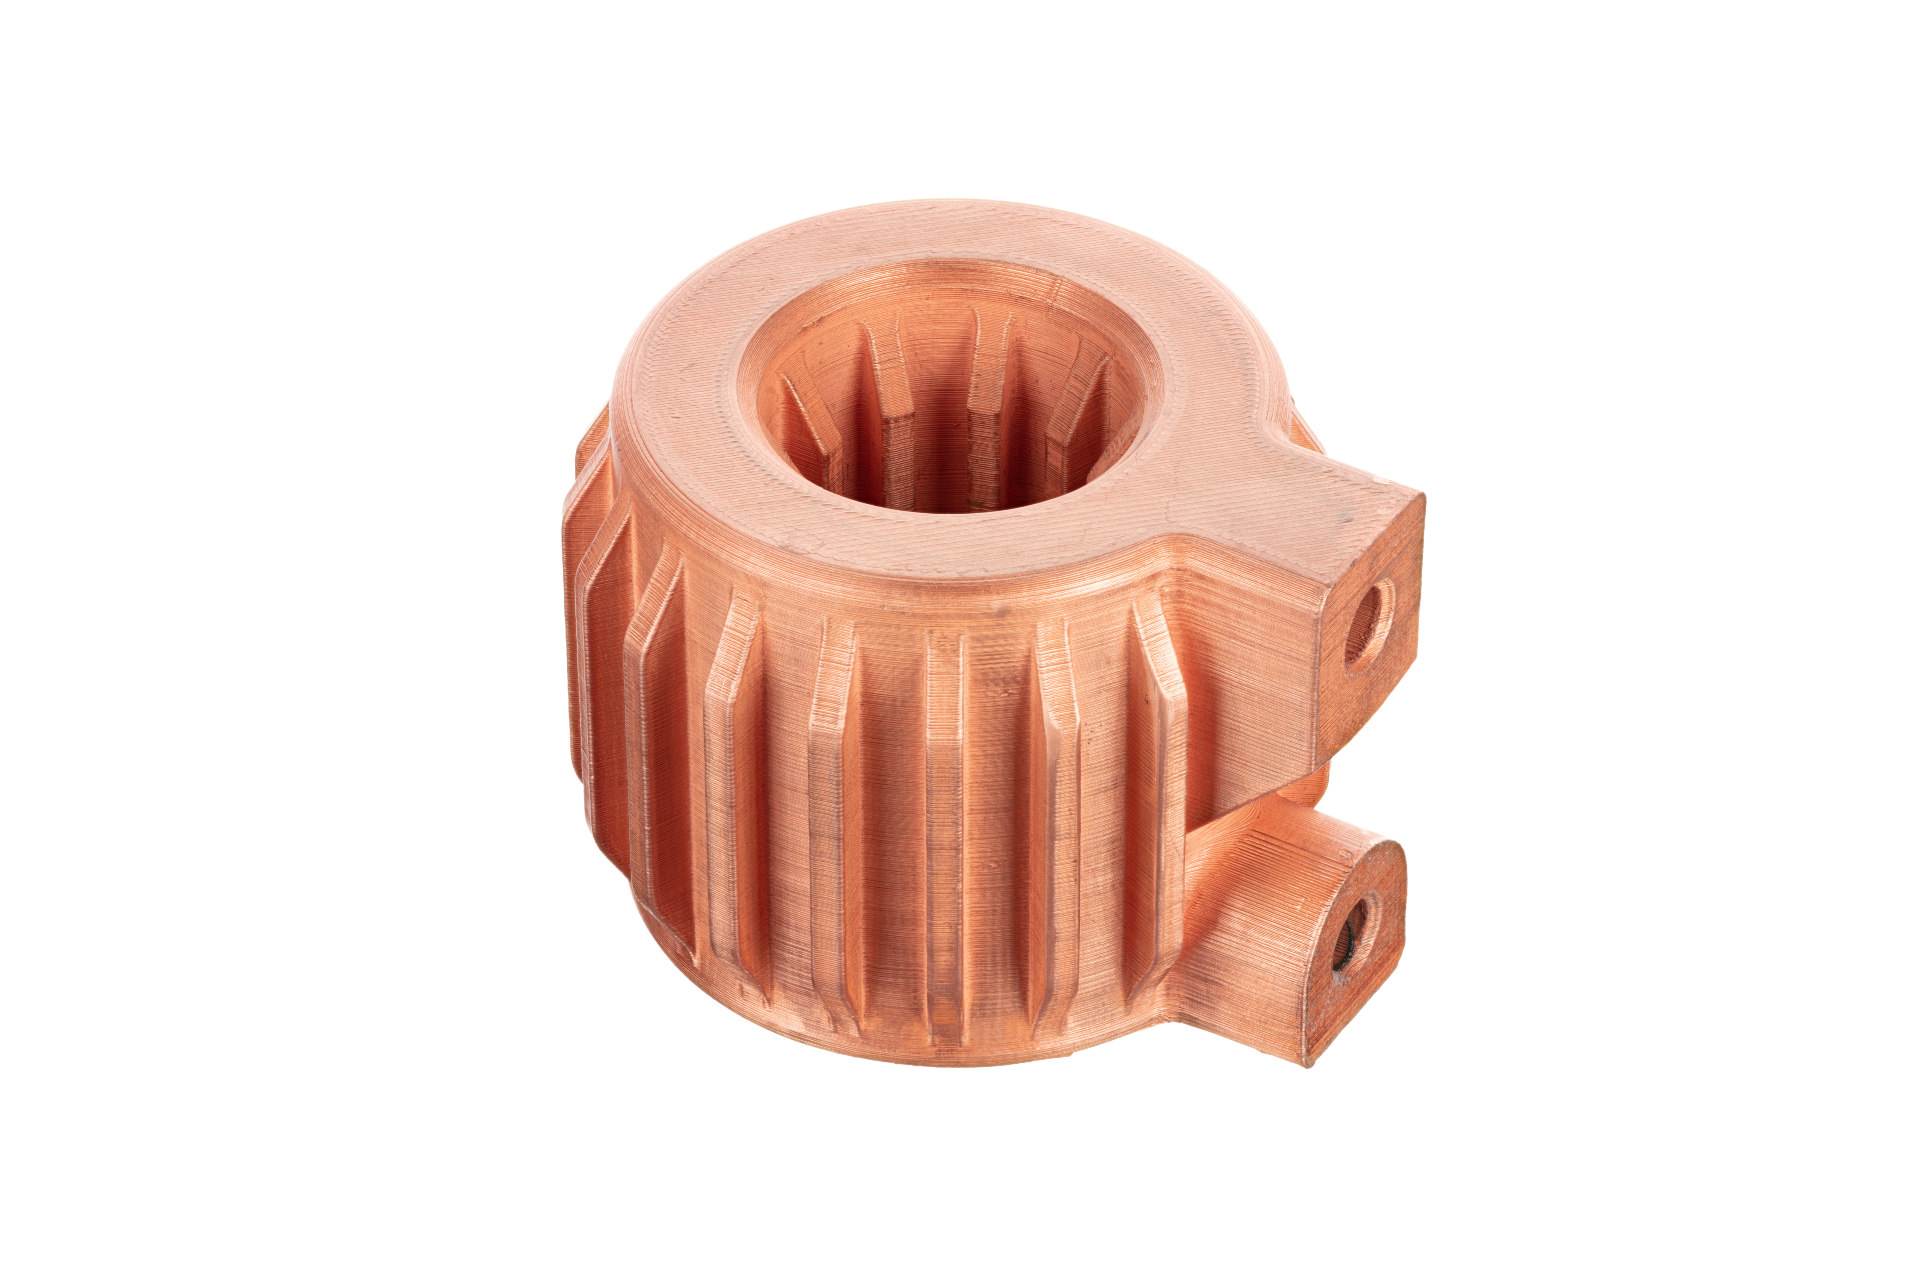 Helical heat exchanger 3D printed in pure copper. Photo via Desktop Metal.